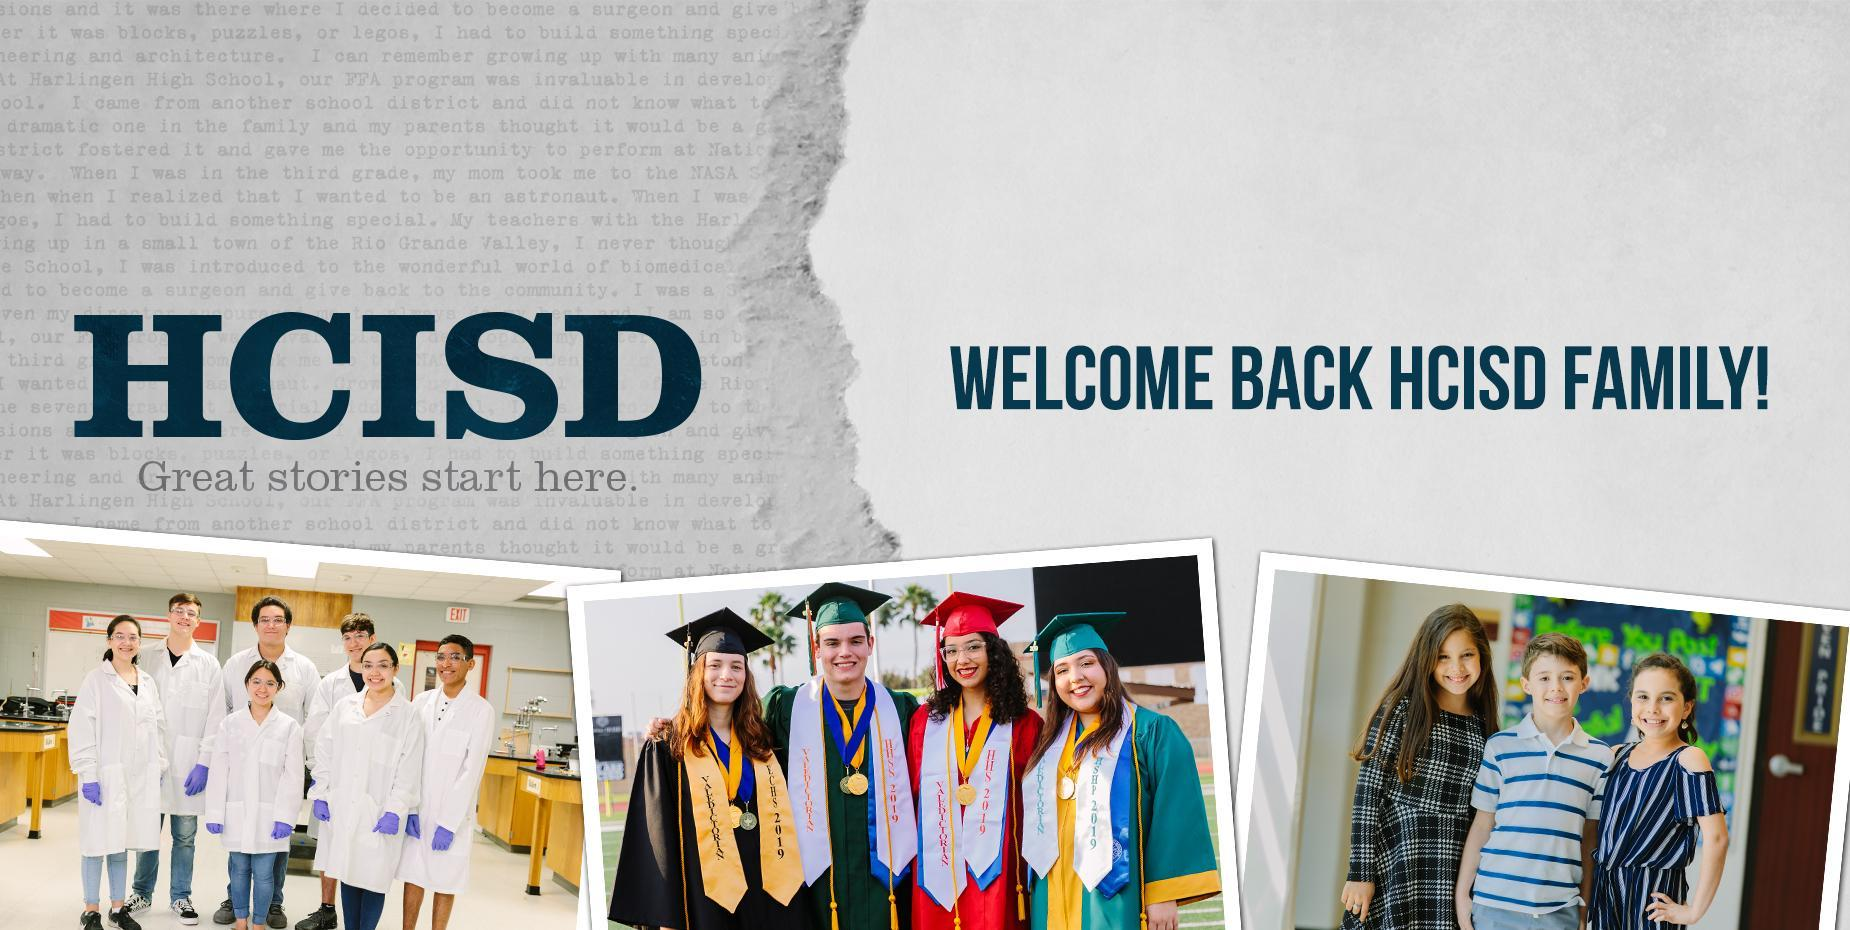 Welcome Back HCISD Family